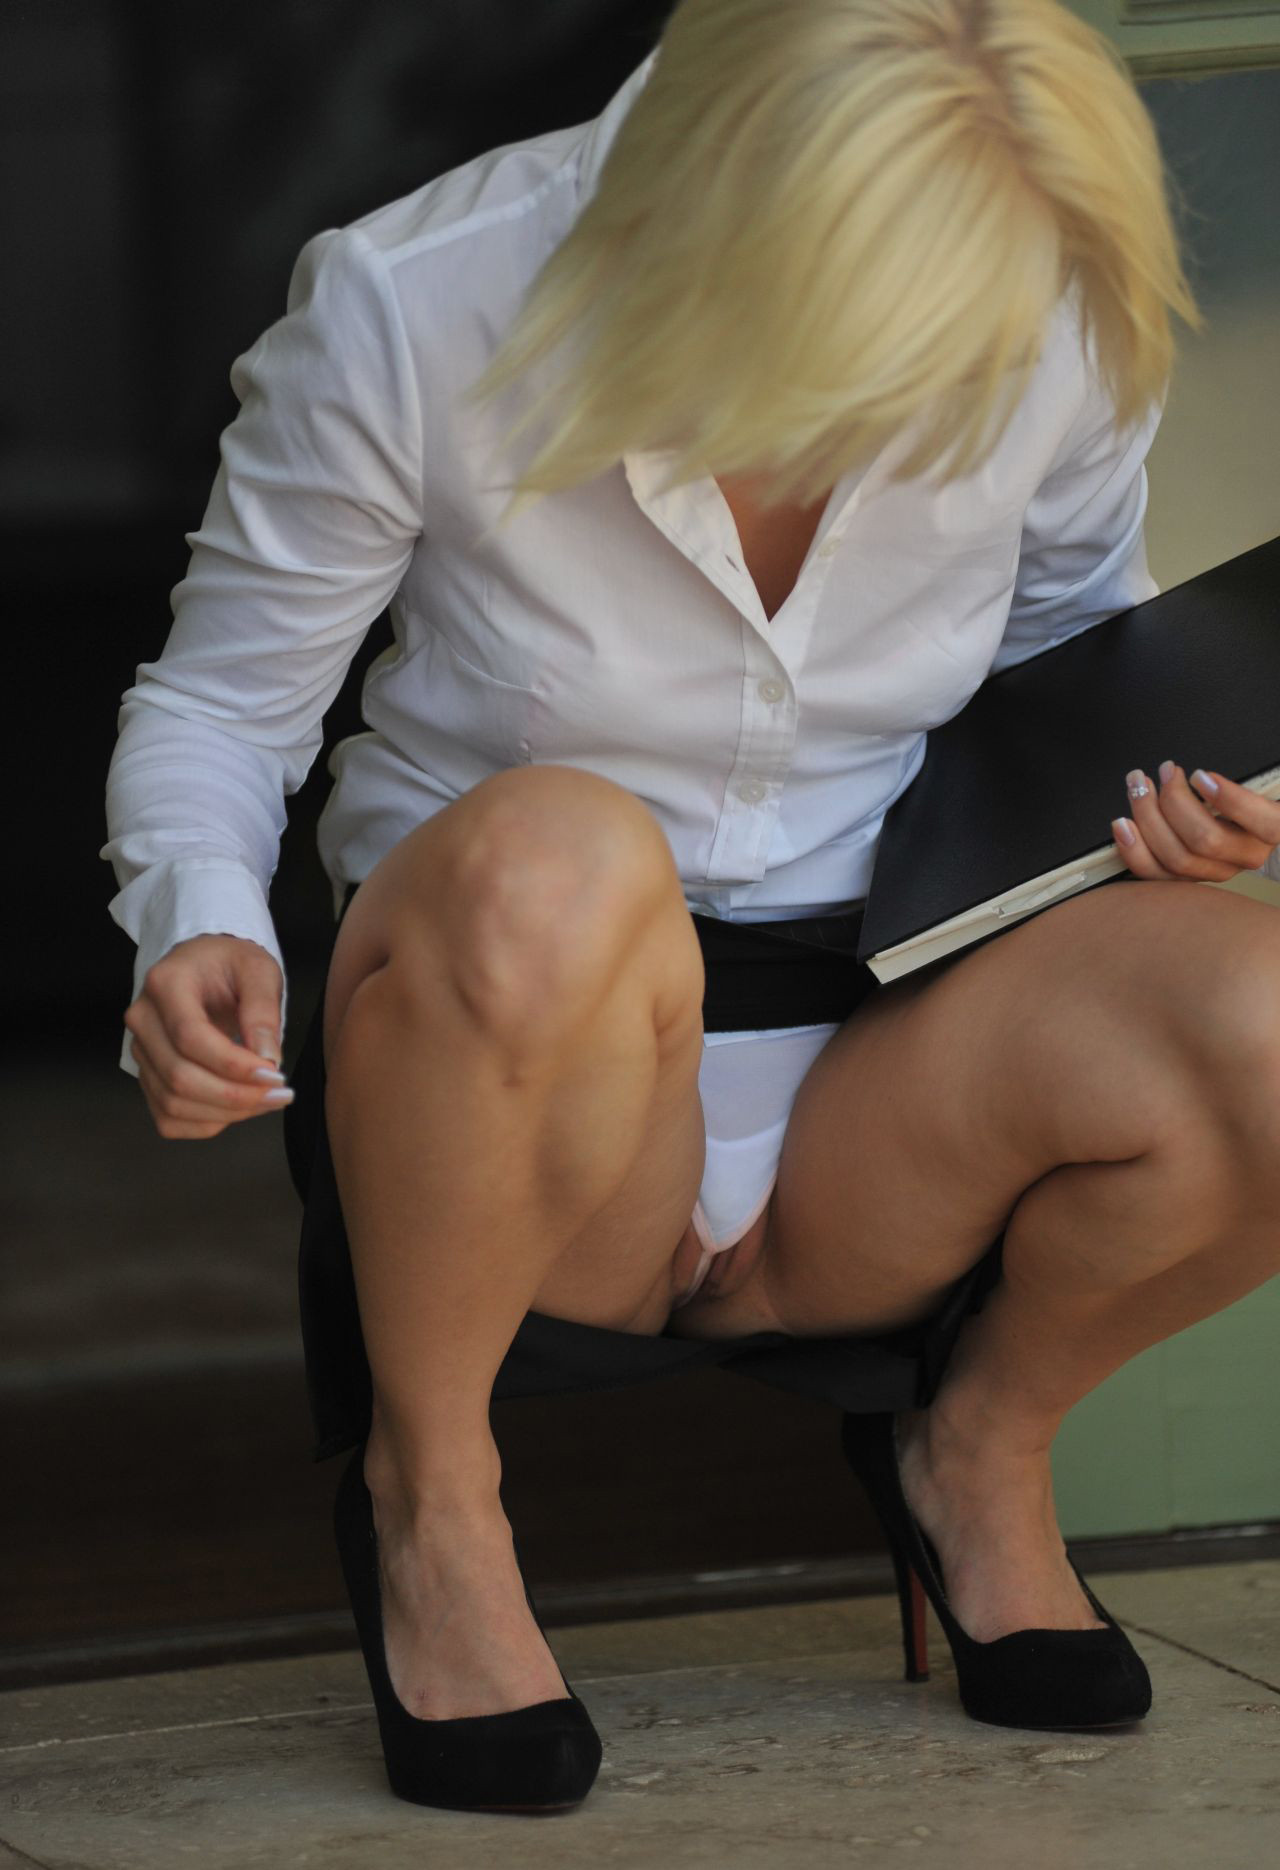 Love Business woman upskirt yes gay STILL